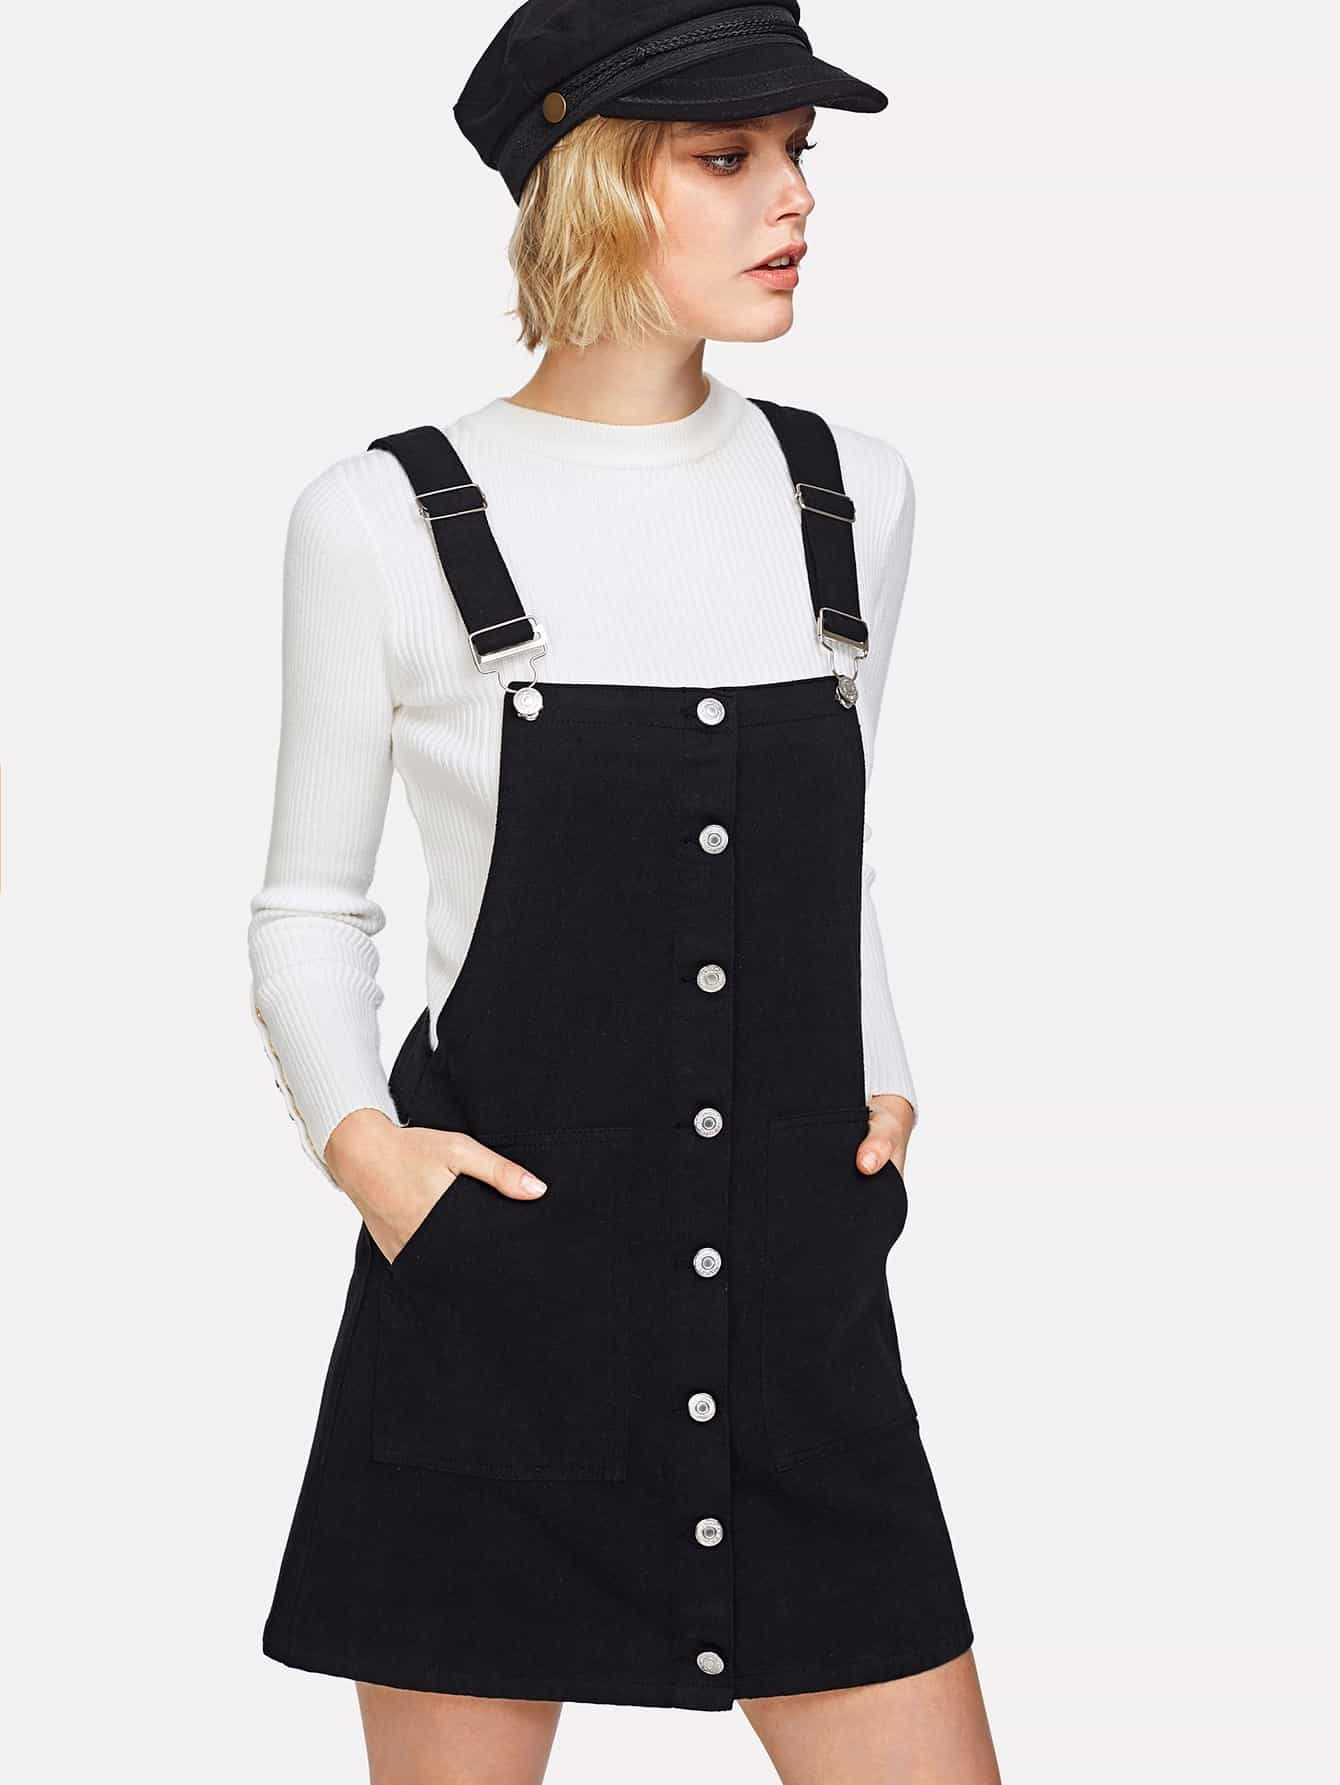 Dual Pocket Overall Denim Dress dress180115032